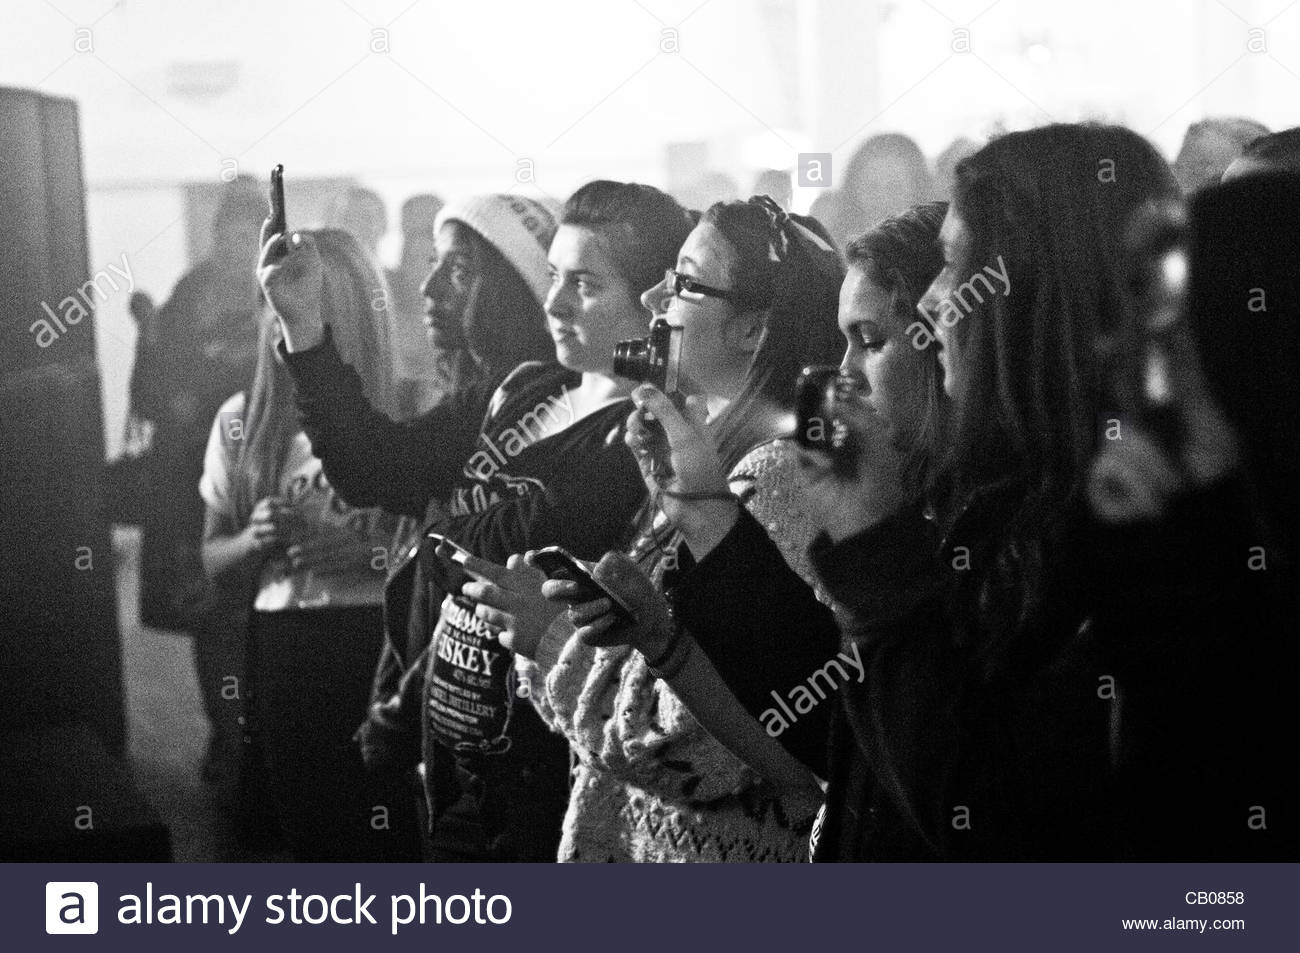 Young female music fans taking photos with cameras and smart phones at the front of a concert for  Alder Hey Charity - Stock Image